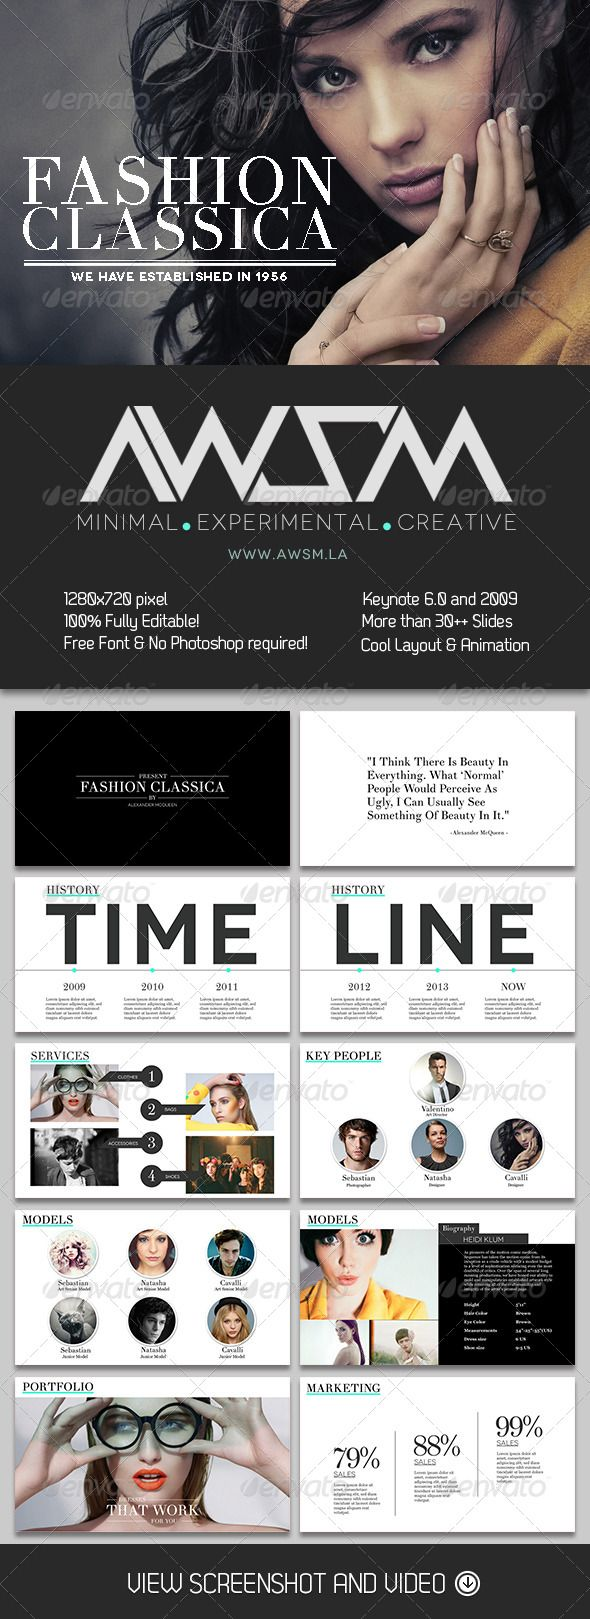 Fashion Classica Keynote Template